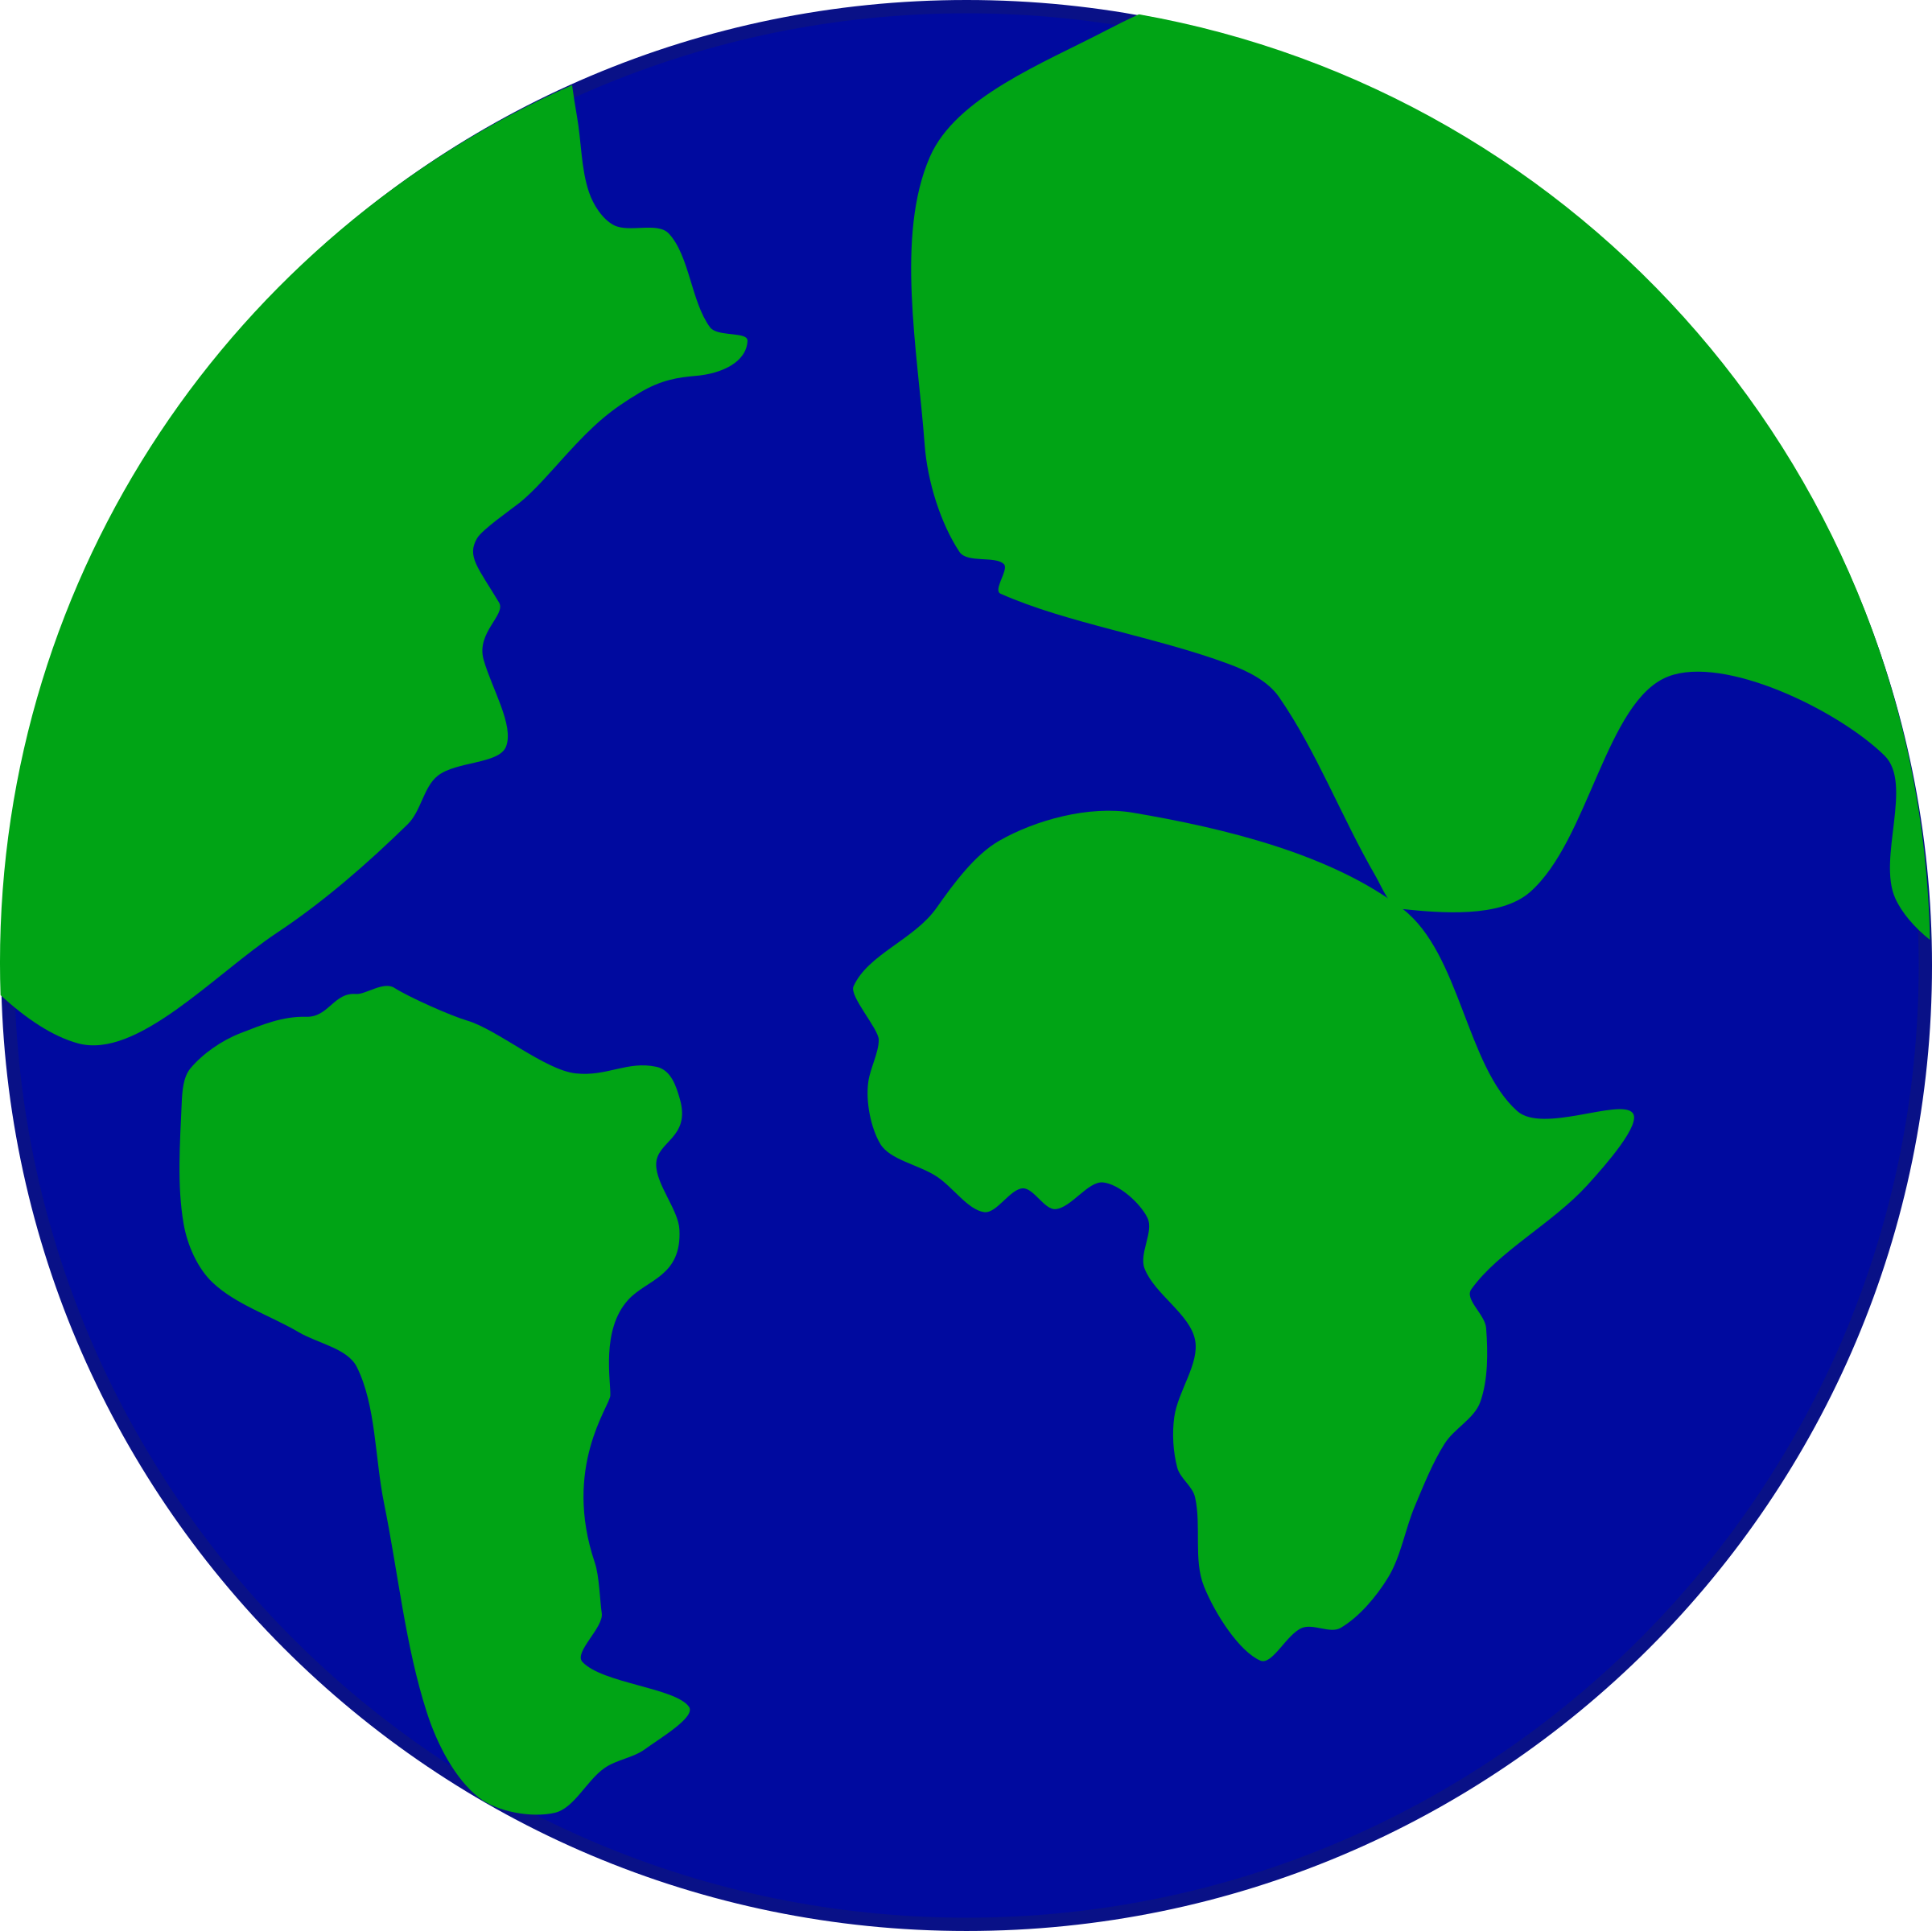 Earth with continents separated by jonadab